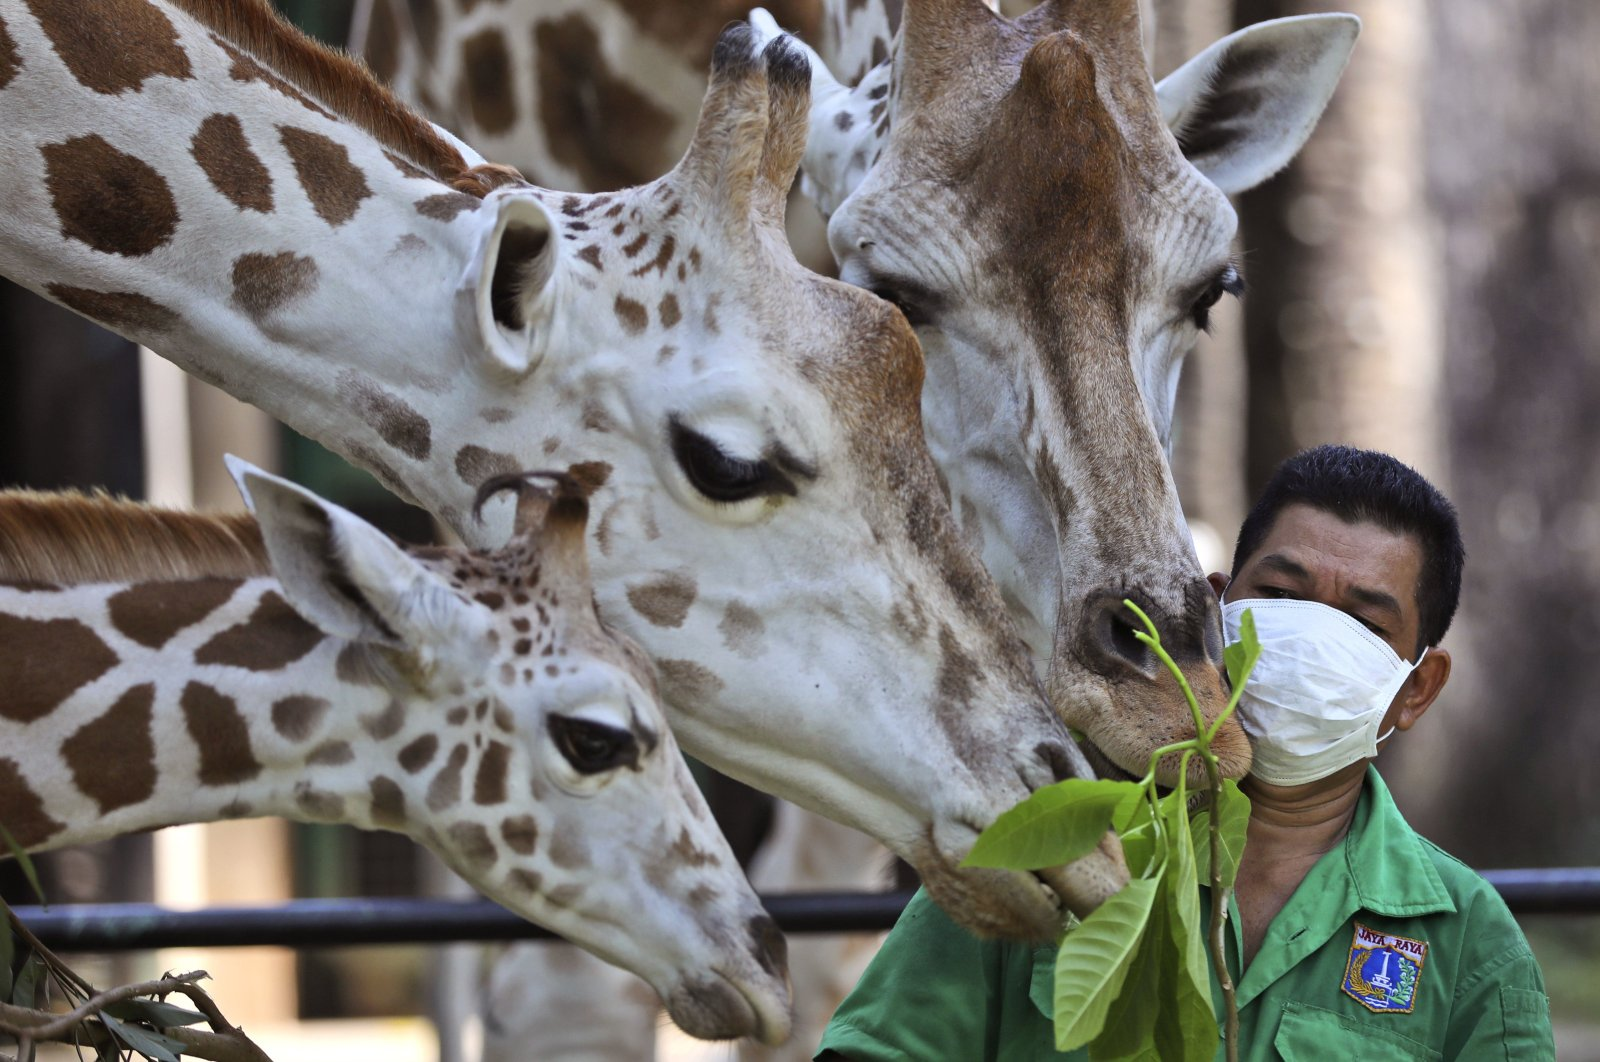 A zookeeper wearing protective face mask feeds giraffes at Ragunan Zoo prior to its reopening after weeks of closure due to the large-scale restrictions imposed to help curb the new coronavirus outbreak, in Jakarta, Indonesia, Wednesday, June 17, 2020. (AP Photo)